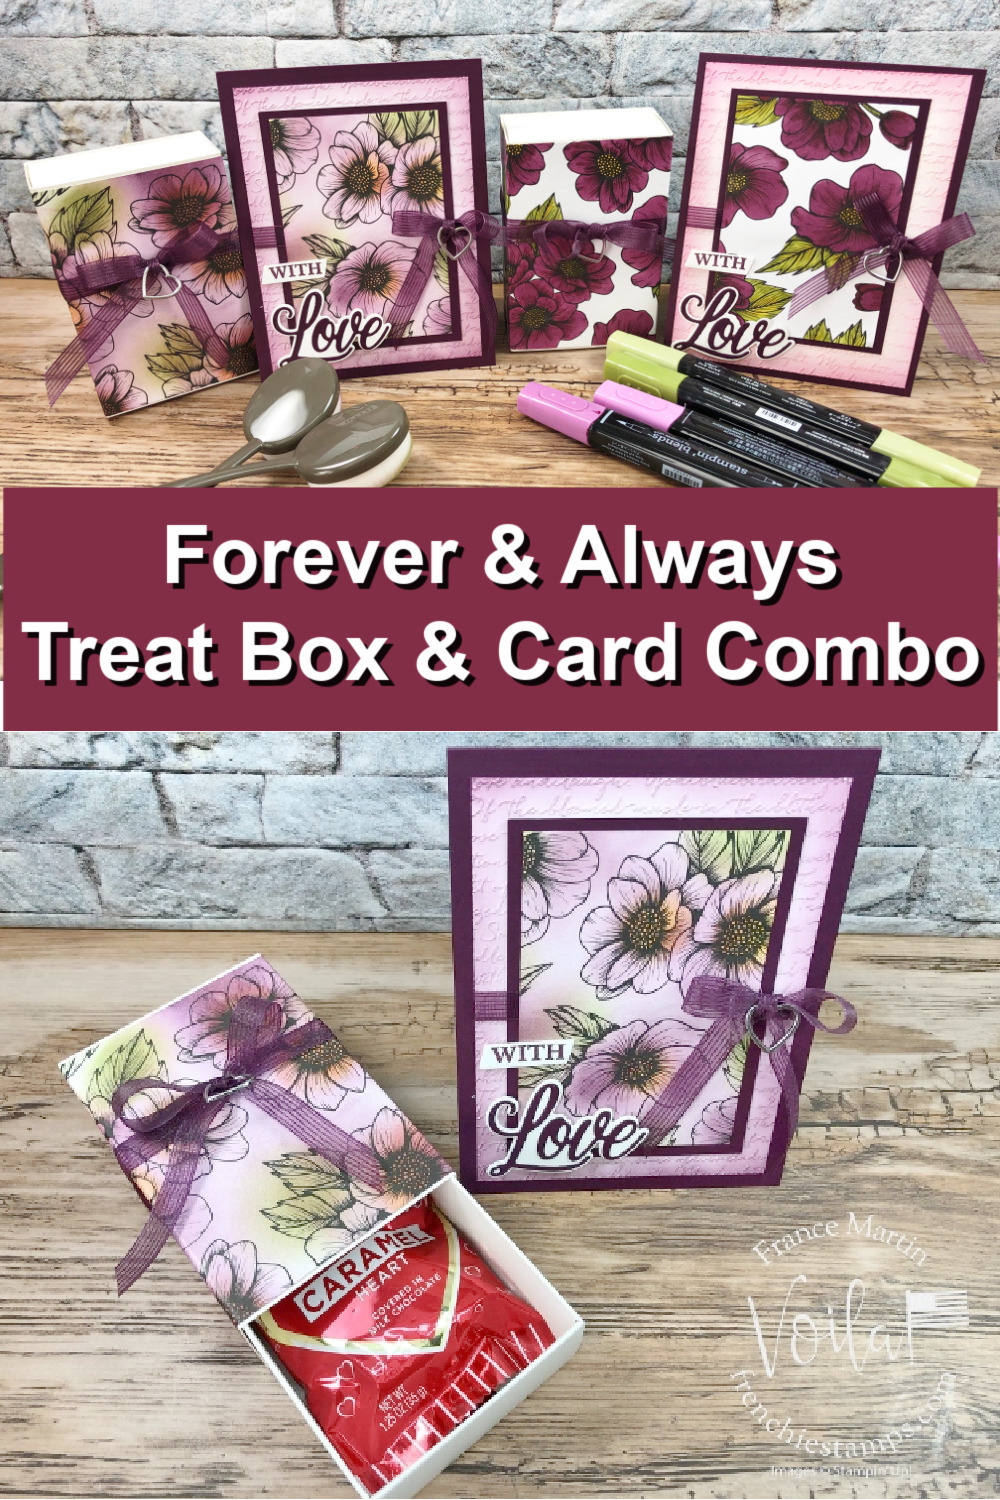 True Love Treat Box and Card Comb